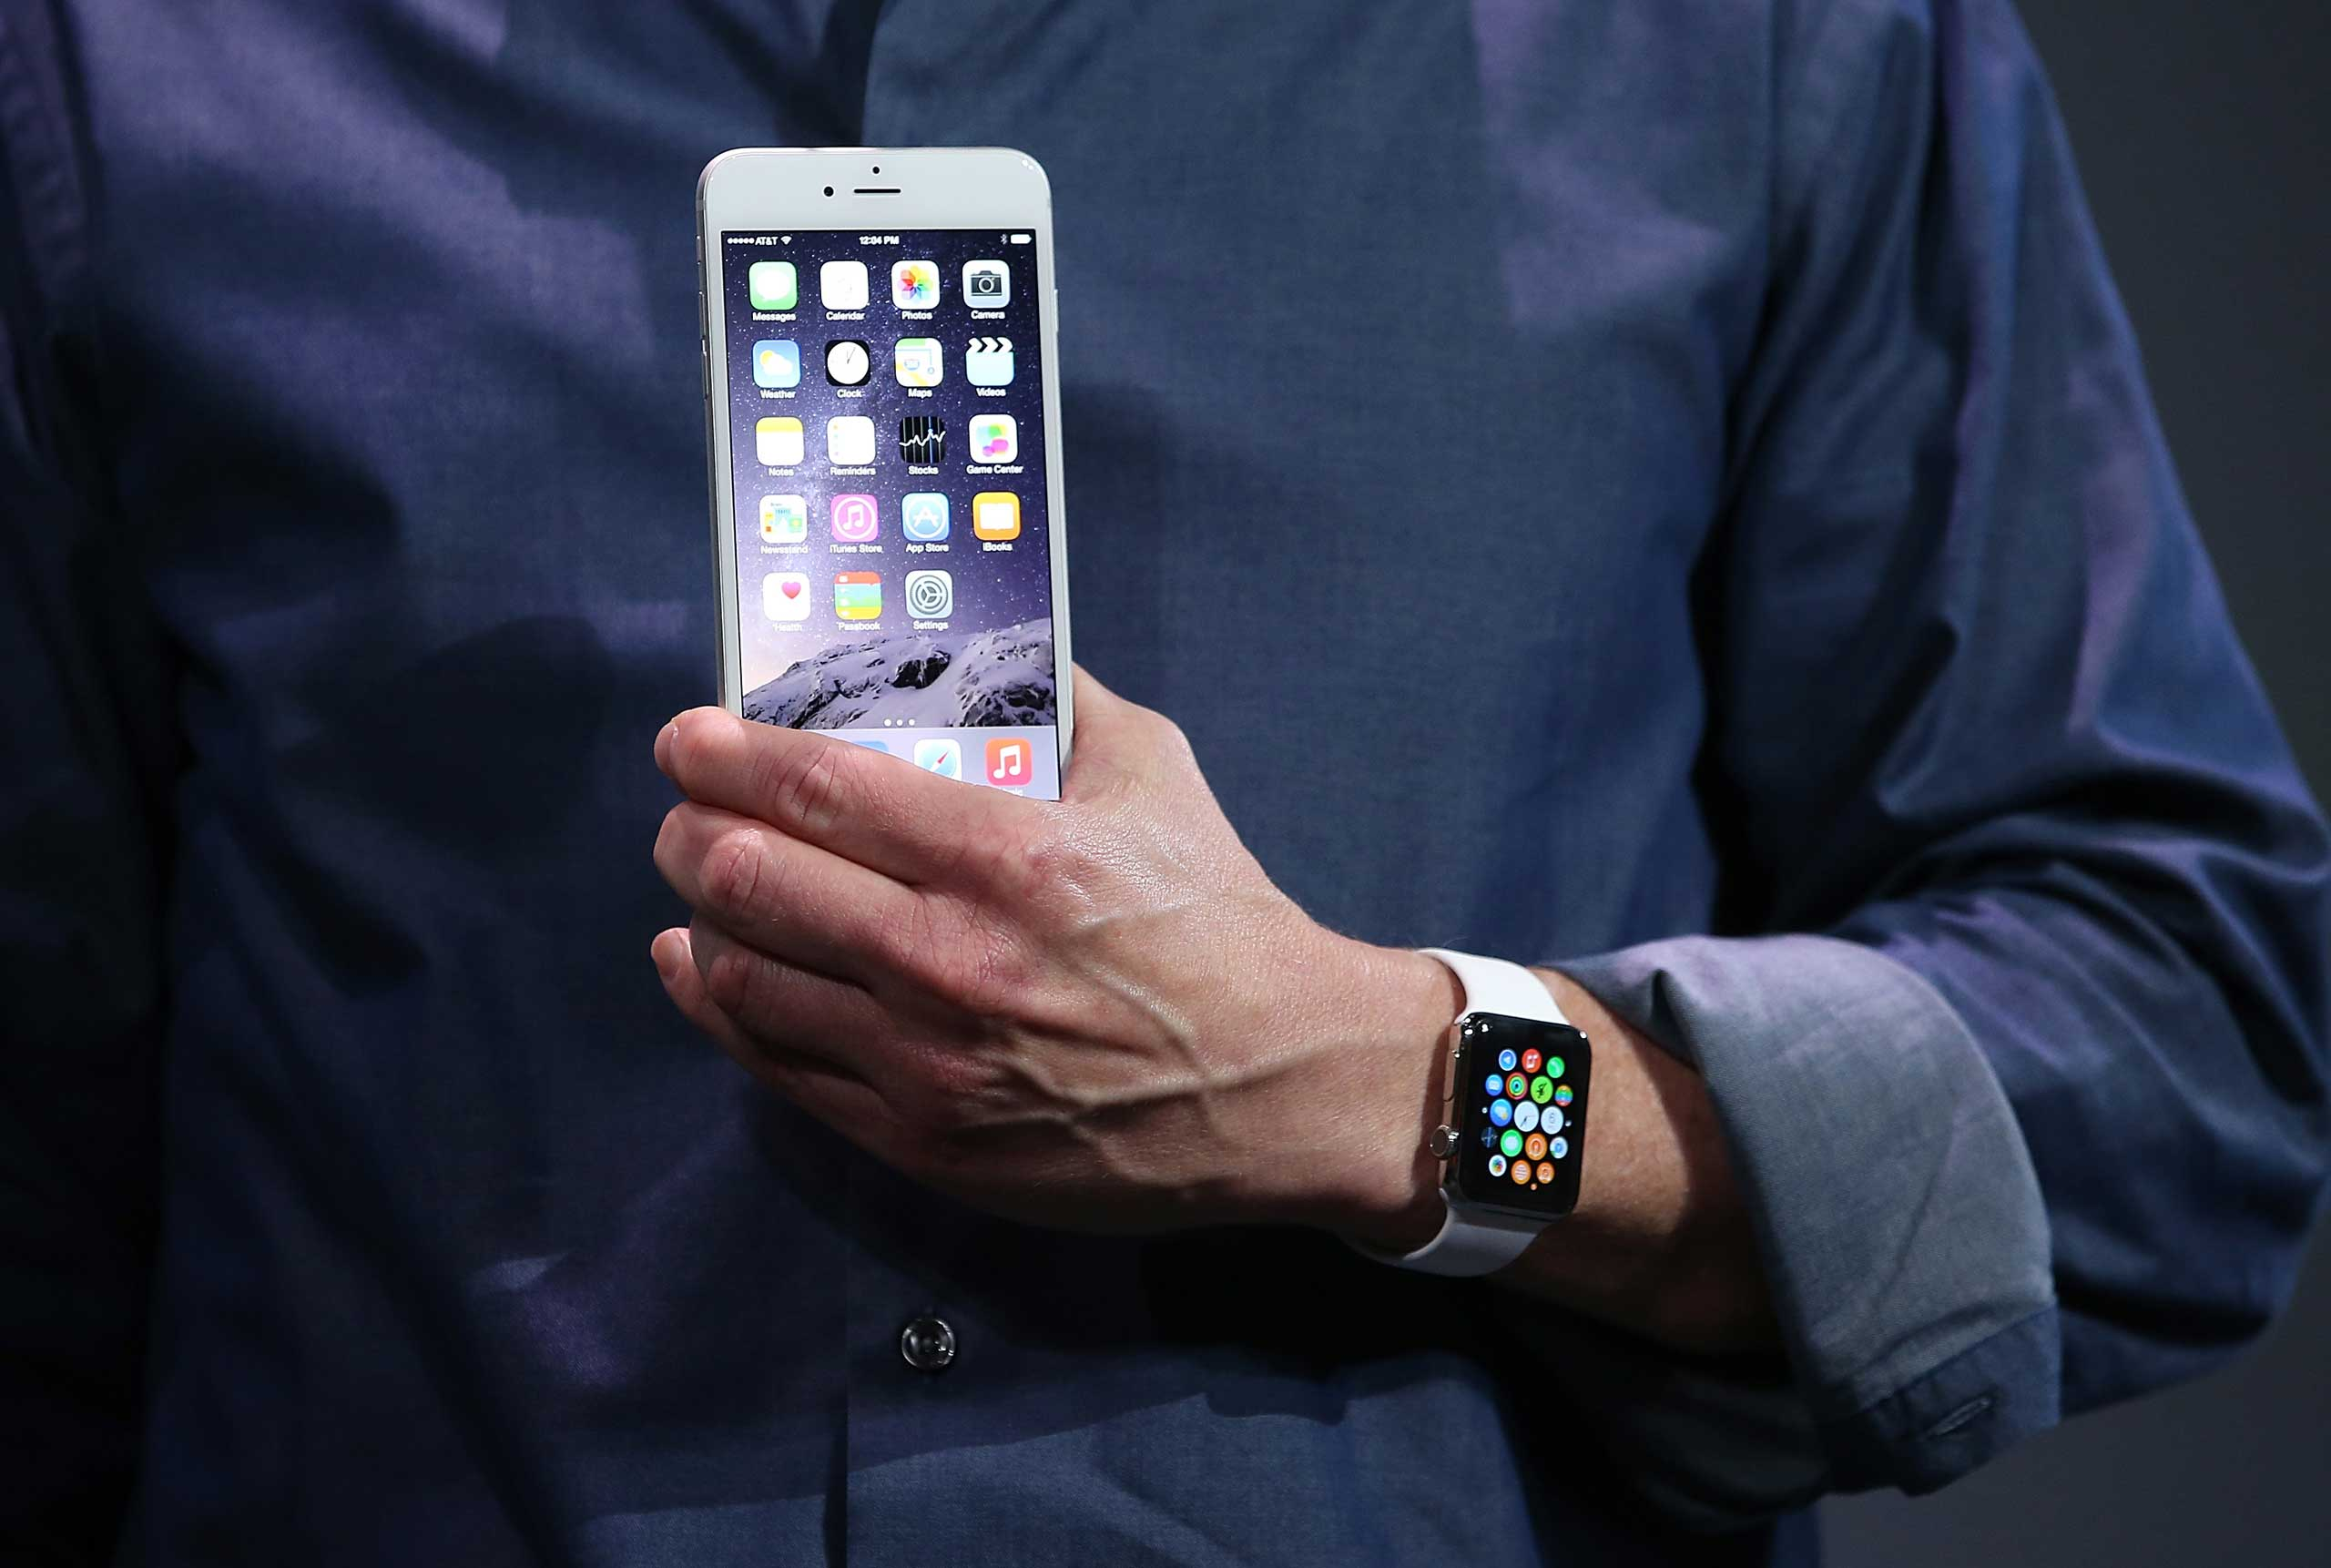 Apple CEO Tim Cook shows off the new iPhone 6 and the Apple Watch during an Apple special event at the Flint Center for the Performing Arts in Cupertino, Calif., September 9, 2014.